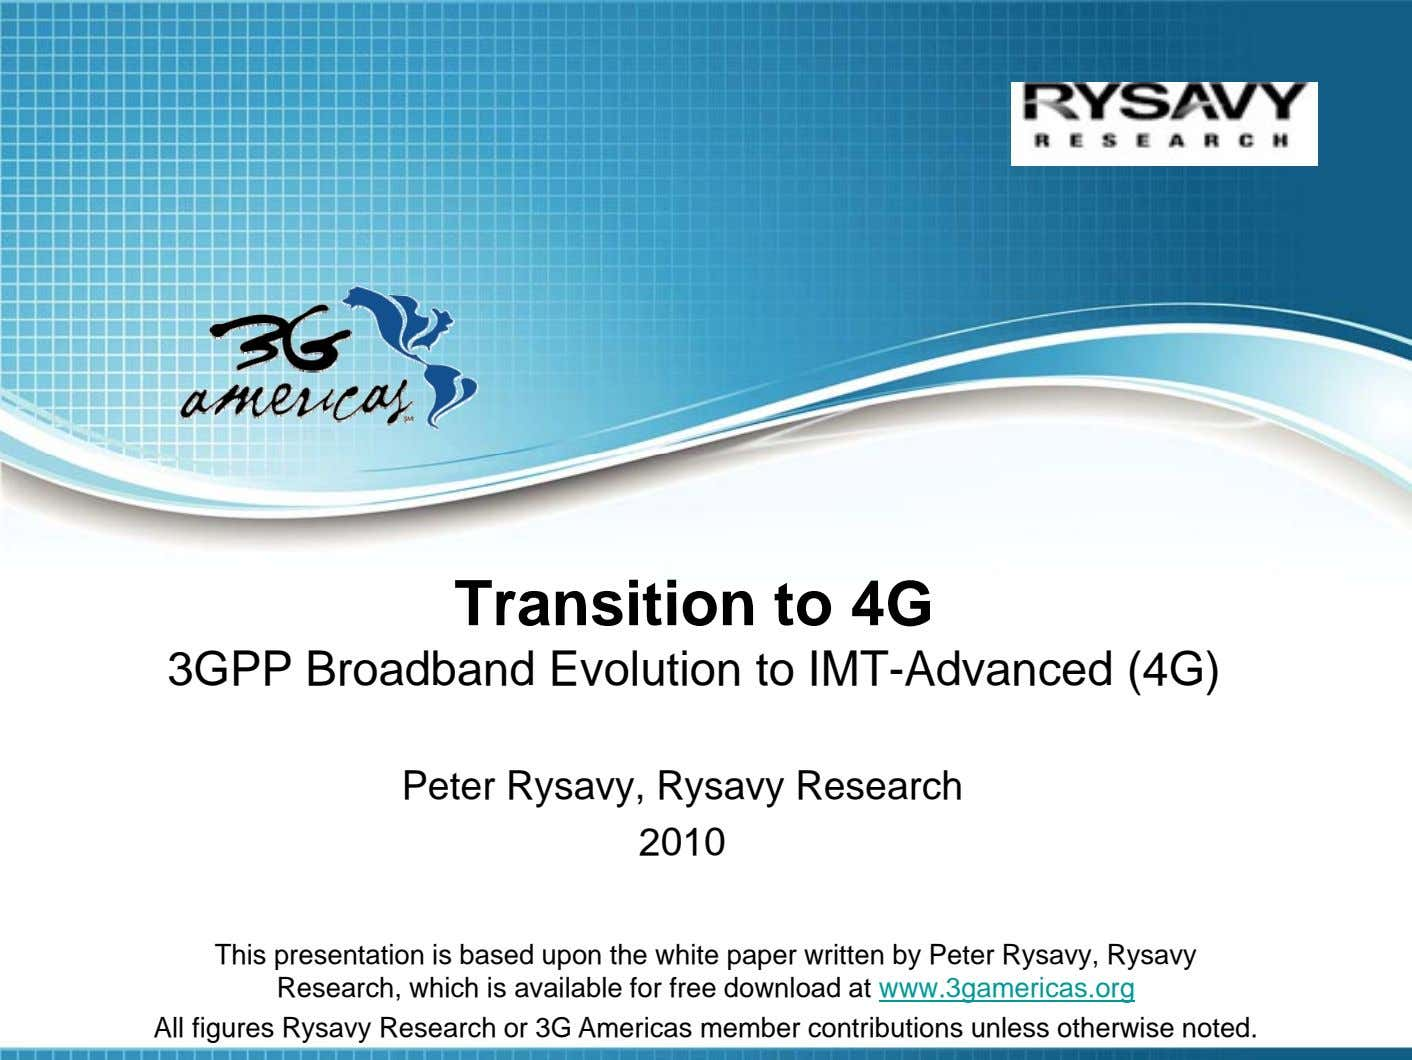 Transition to 4G 3GPP Broadband Evolution to IMT-Advanced (4G) Peter Rysavy, Rysavy Research 2010 This